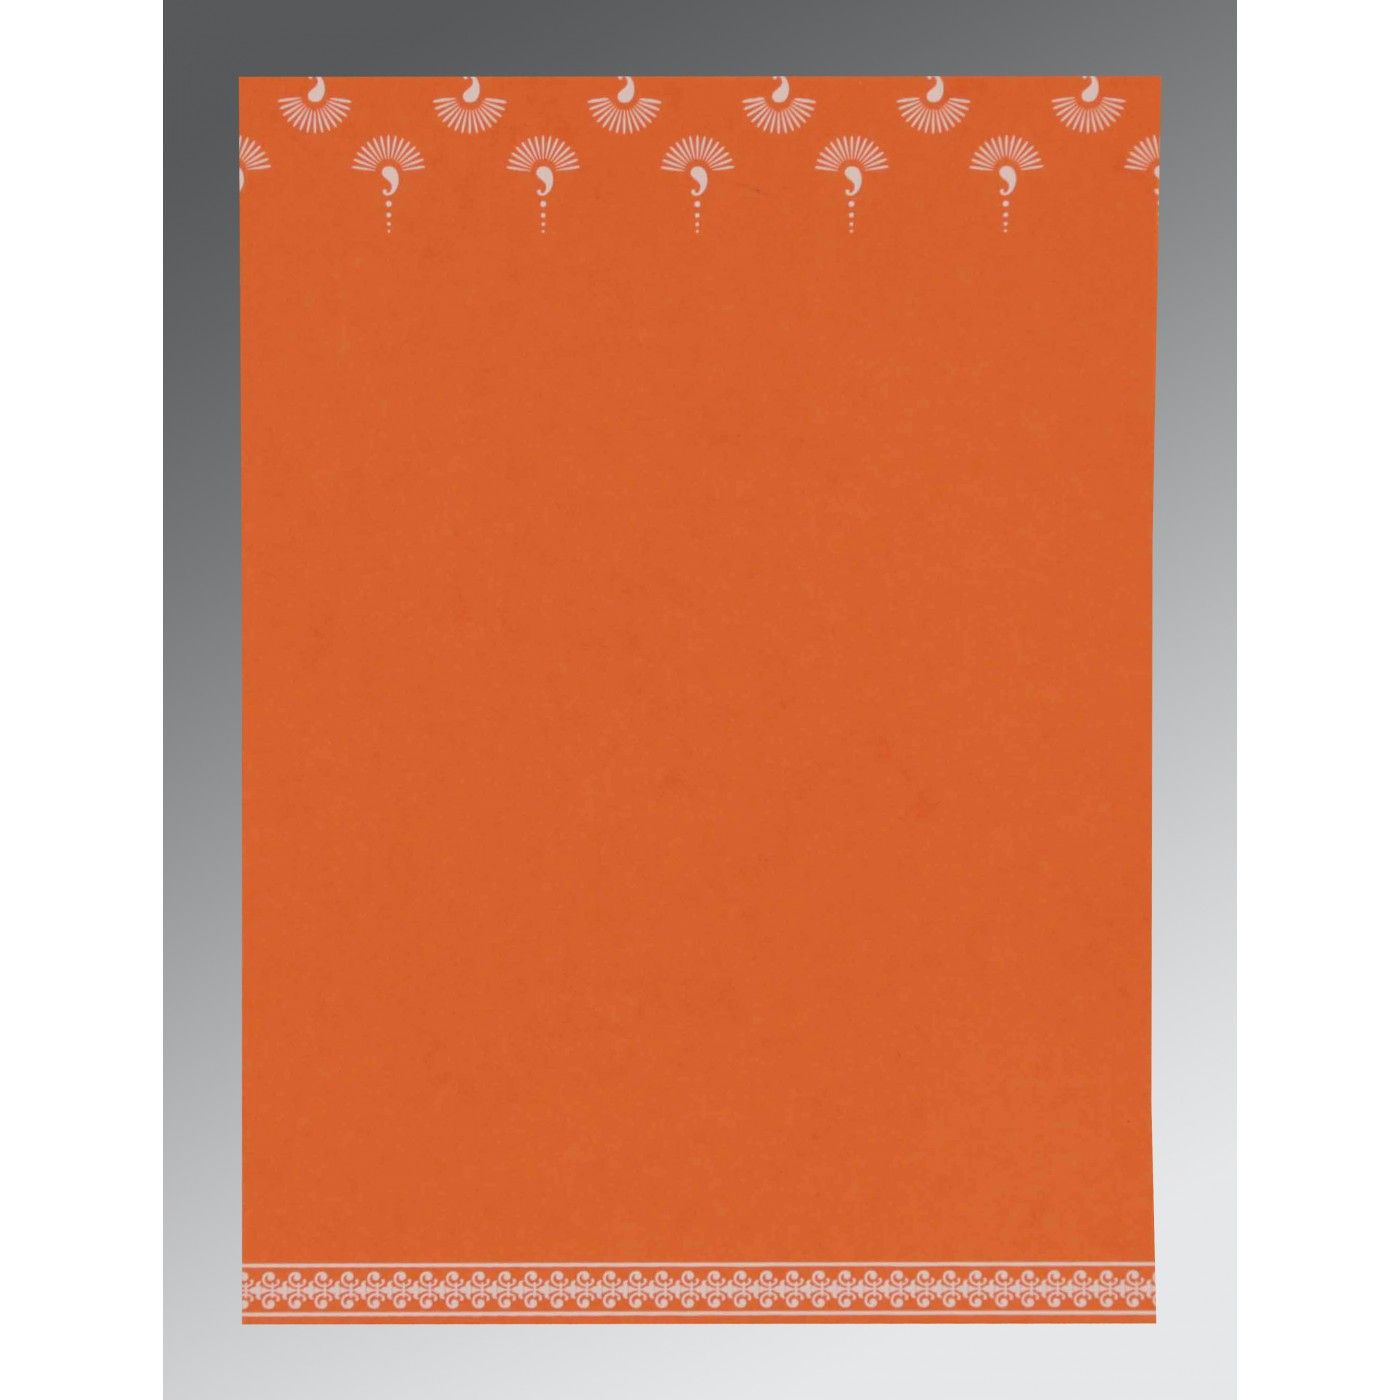 ORANGE MATTE SCREEN PRINTED WEDDING INVITATION : CS-8247I - IndianWeddingCards